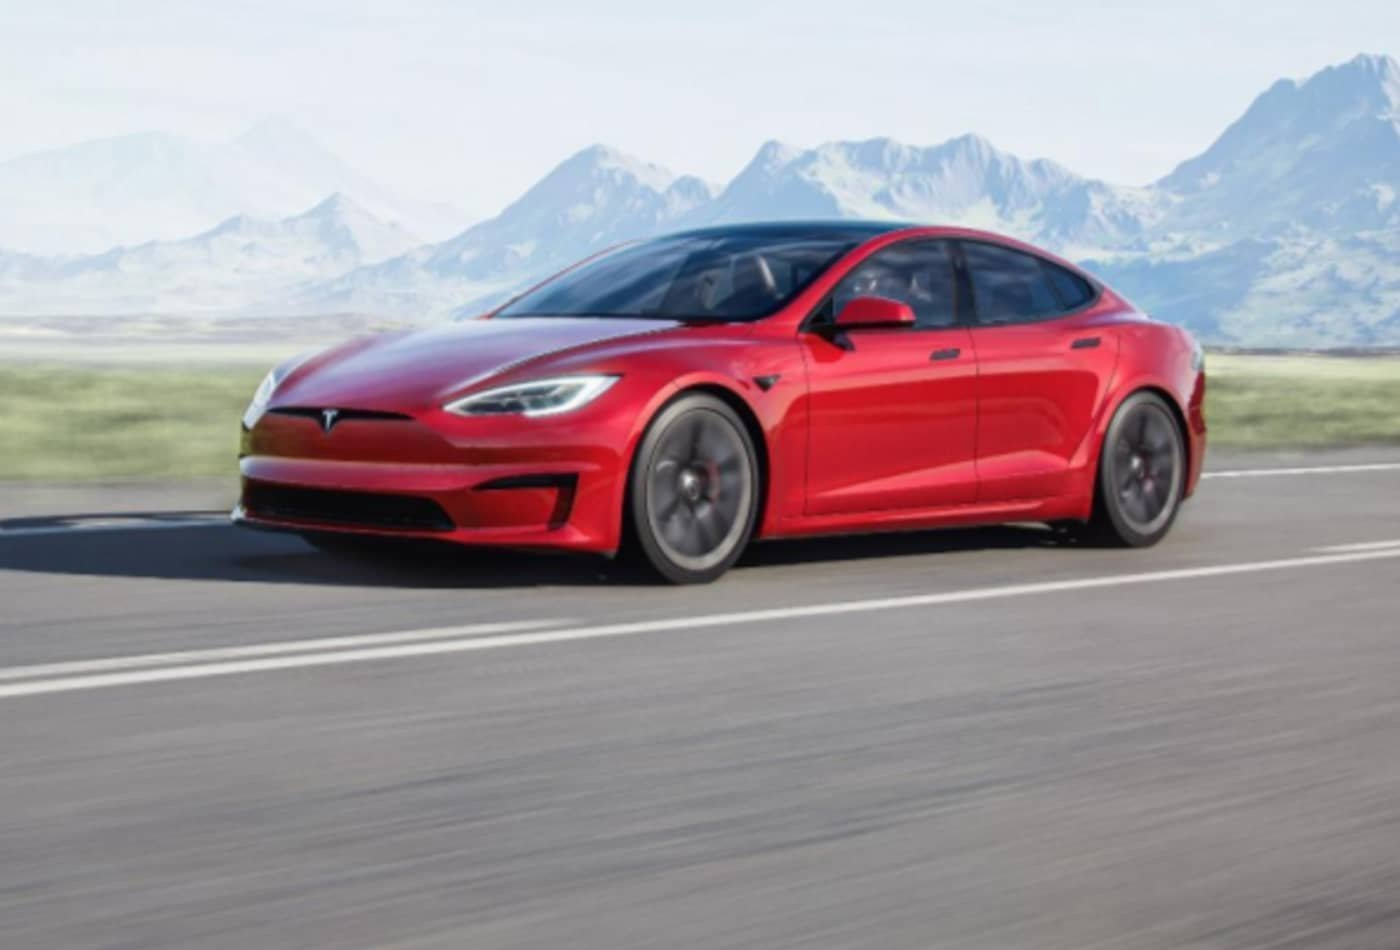 Tesla's Model S Plaid: The 'World's Quickest Car' Makes Its Debut